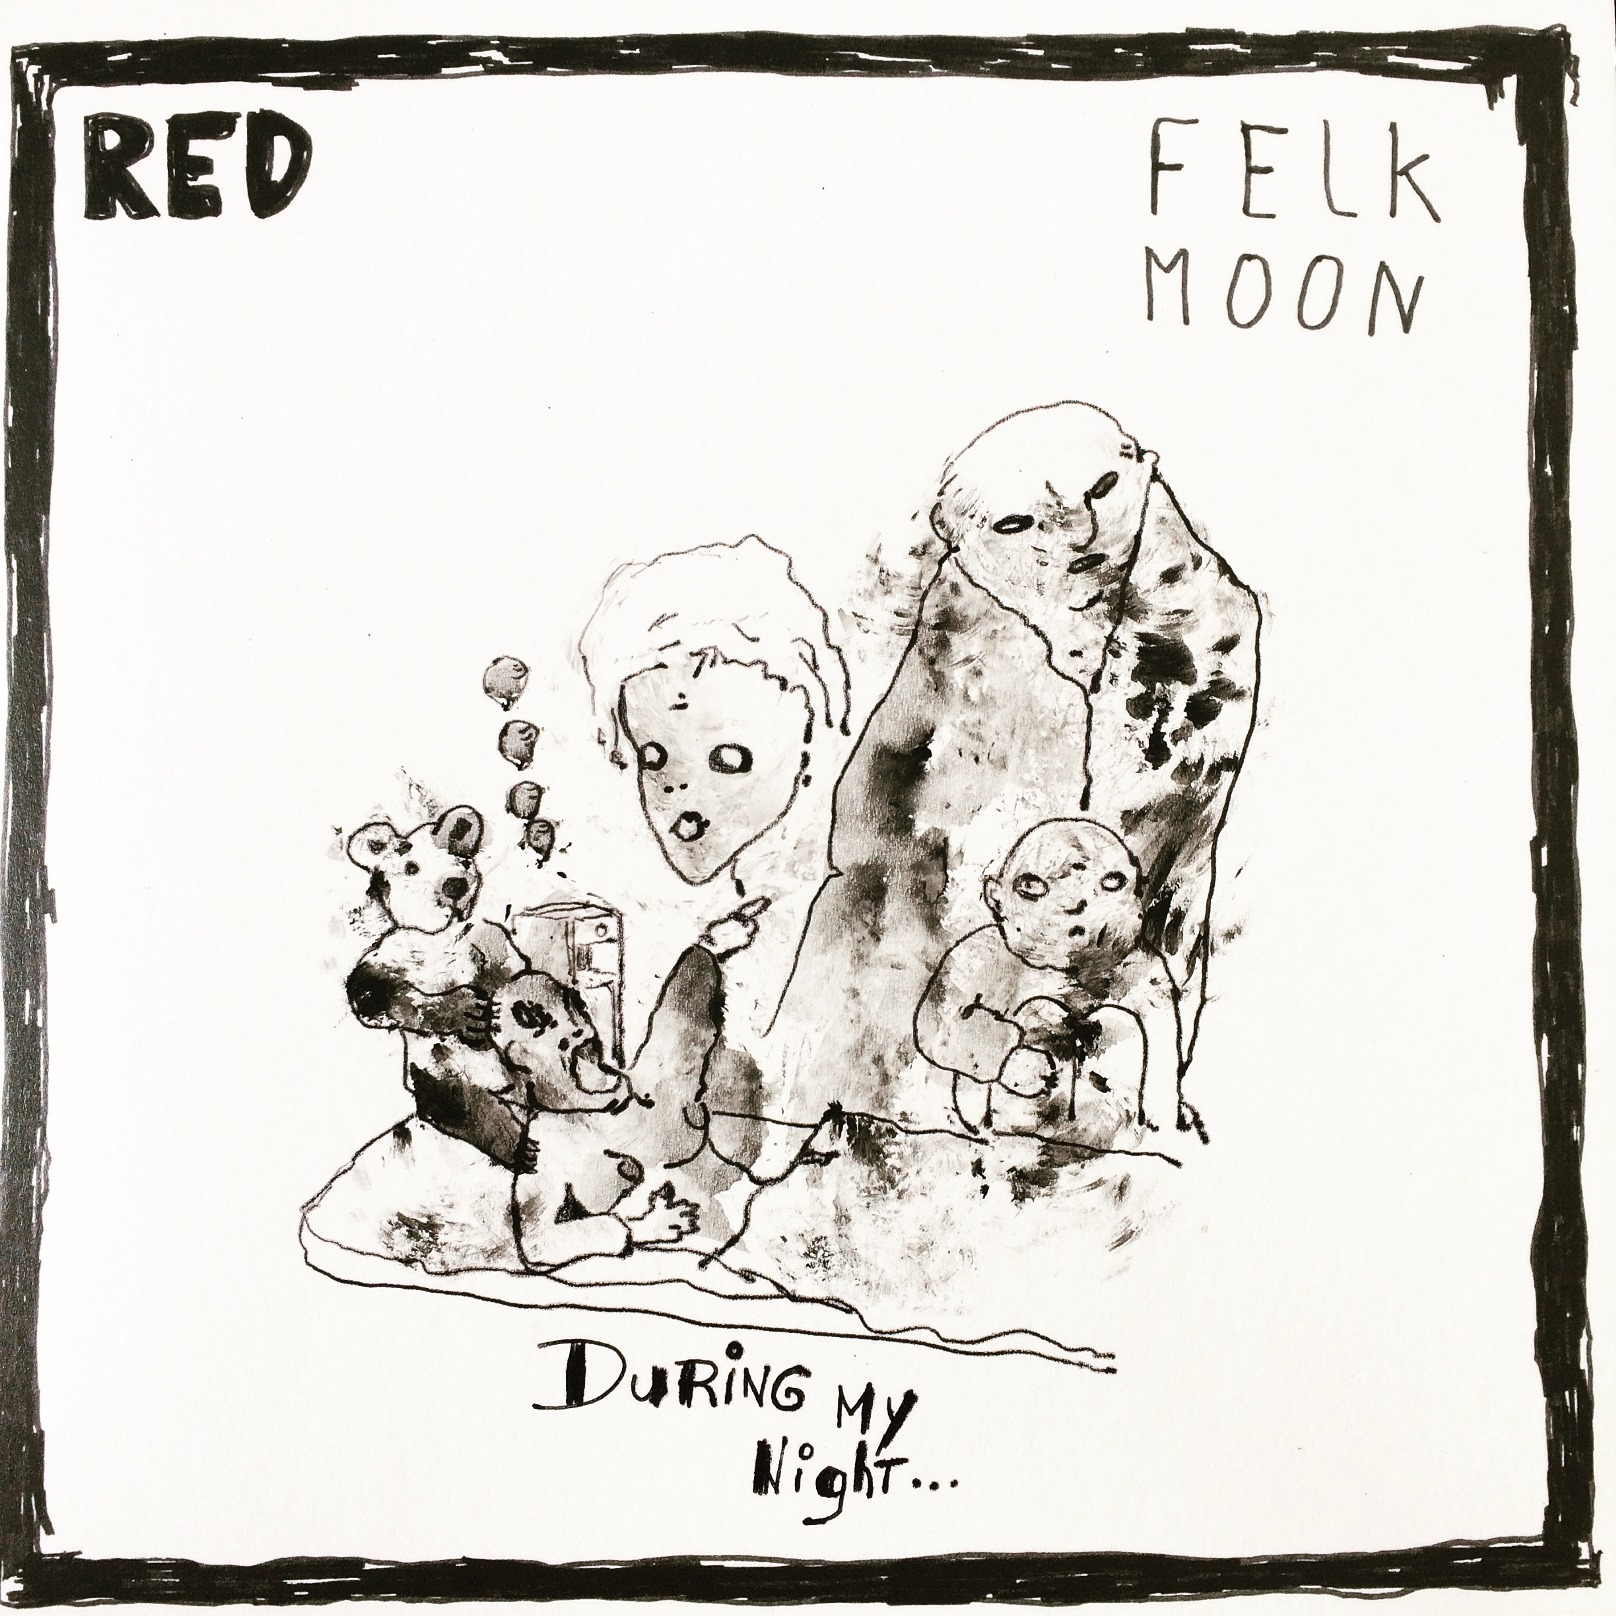 Red – L'expo « Felk moon » + un live